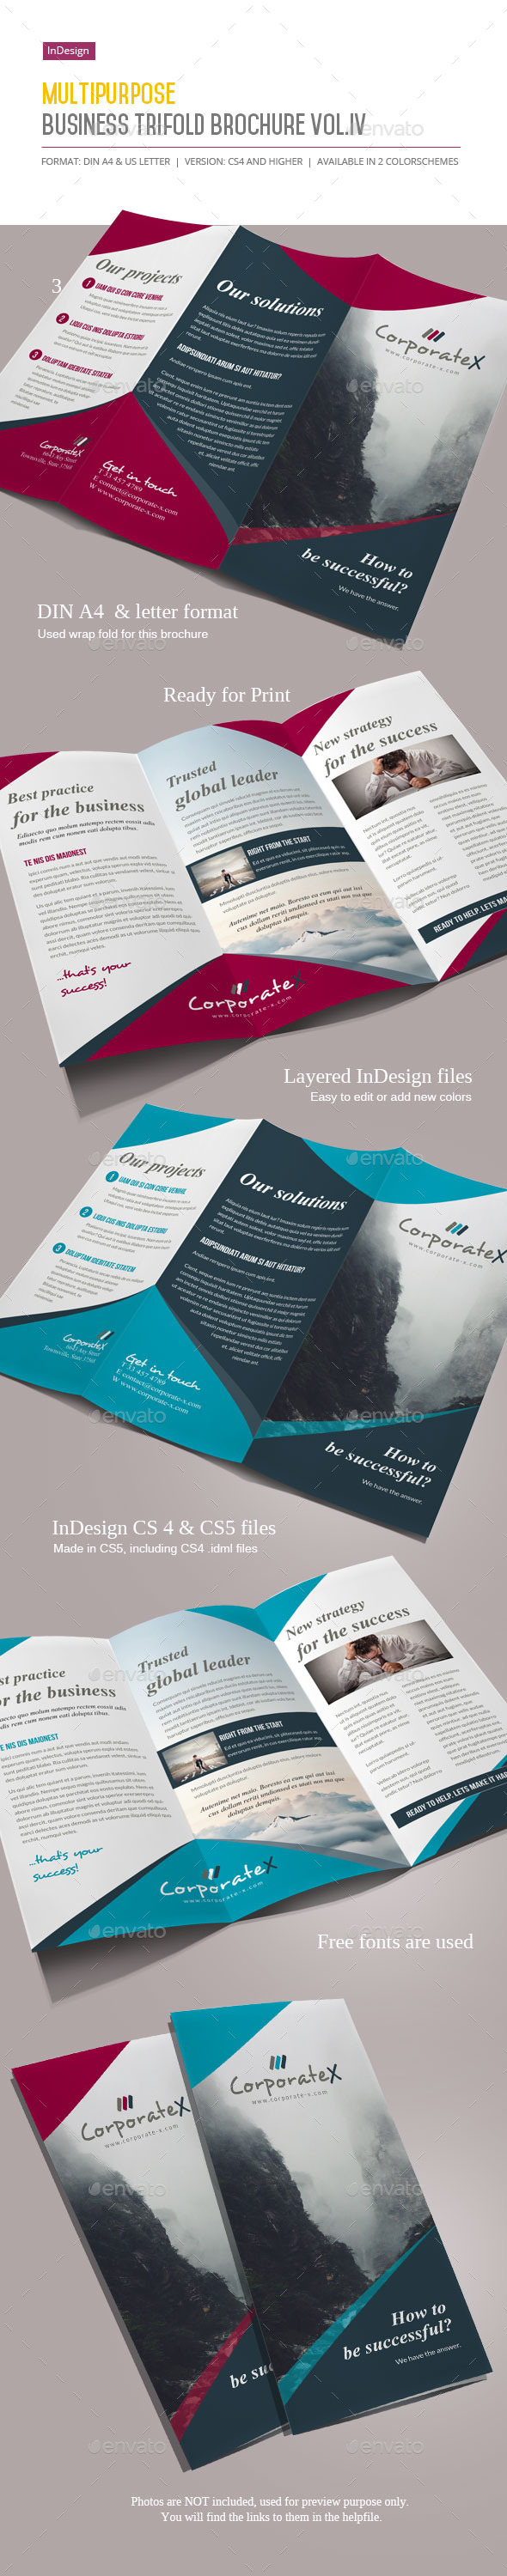 GraphicRiver Business Trifold Brochure Vol IV 11526218